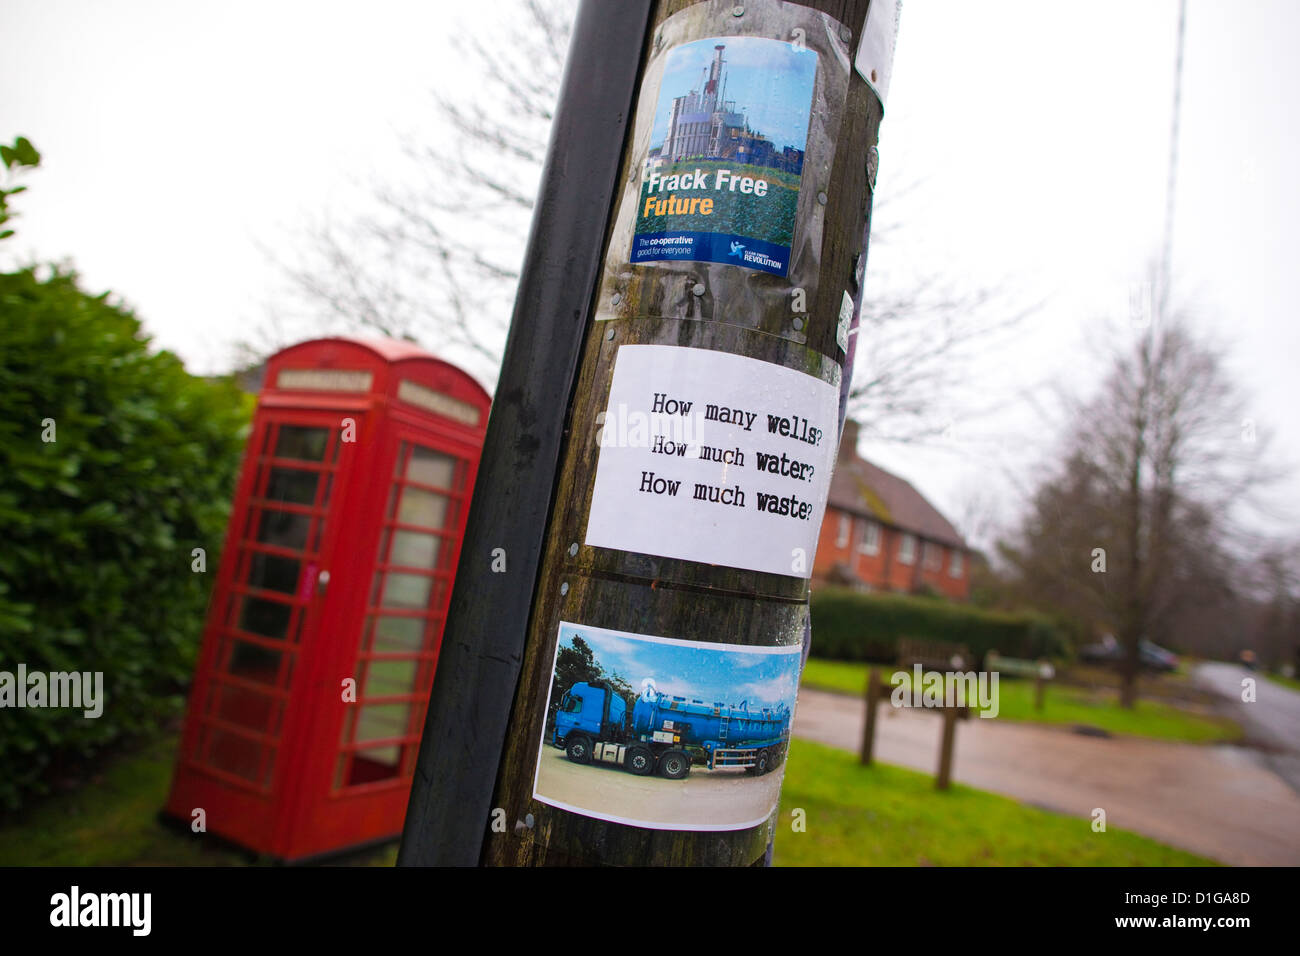 Anti-Fracking propaganda fixed to a lamp post in Balcombe, West Sussex, England, UK - Stock Image